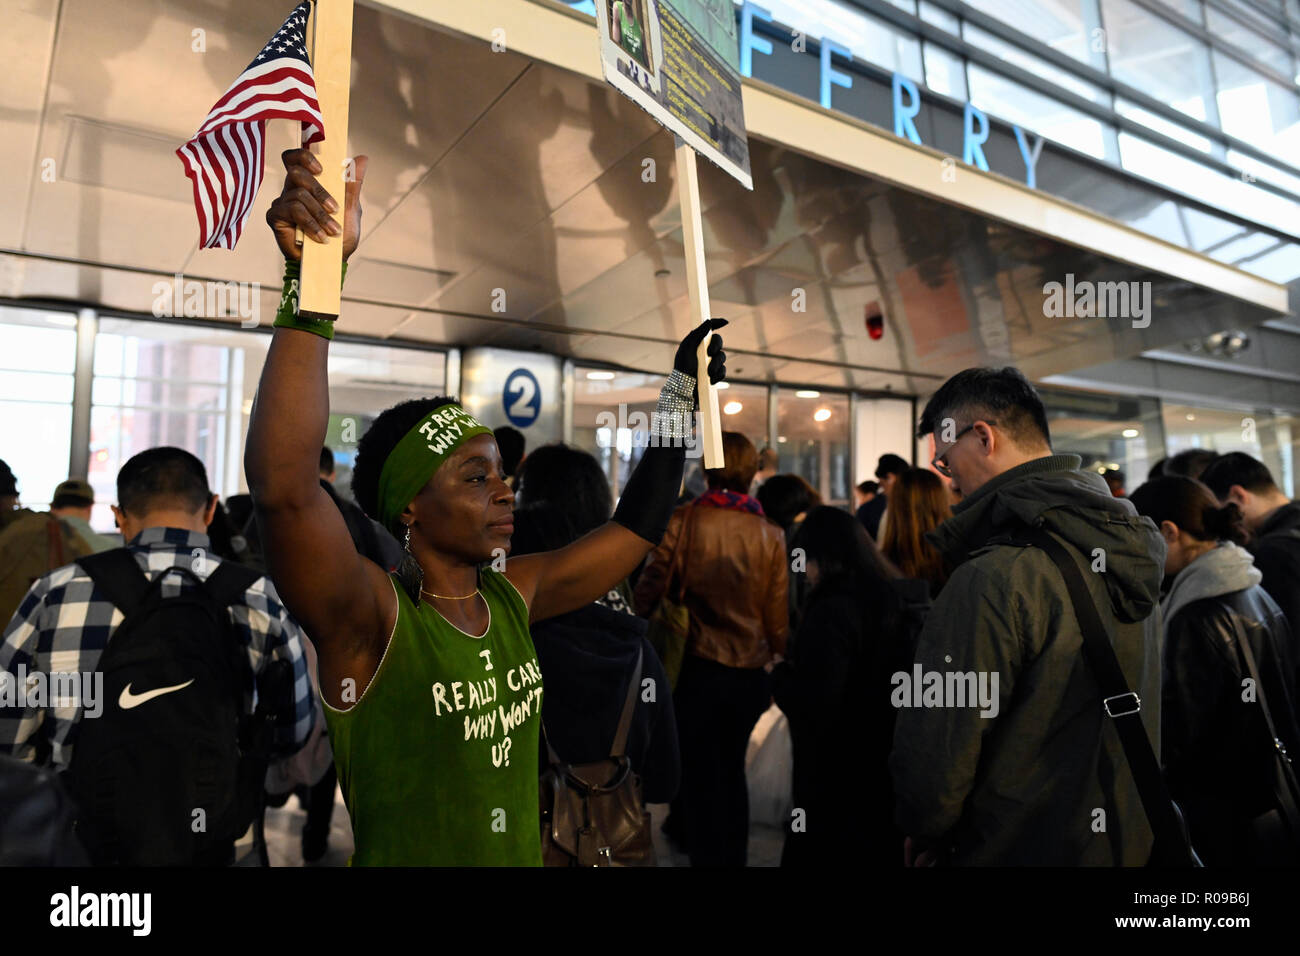 New York, USA. 2 November 2018.  Activist Patricia Okoumou, who climbed the pedestal of the Statue of Liberty on July 4, urges morning commuters at the Staten Island Ferry Terminal to vote in the mid-term elections on Tuesday.  Okoumou faces trial in federal court in Manhattan on  December 17 on charges related to her act of civil disobedience in which she climbed the pedestal of the Statue of Liberty to protest against Trump administration immigration policies.  Okoumou is a native of the Republic of the Congo. Credit: Joseph Reid/Alamy Live News Stock Photo